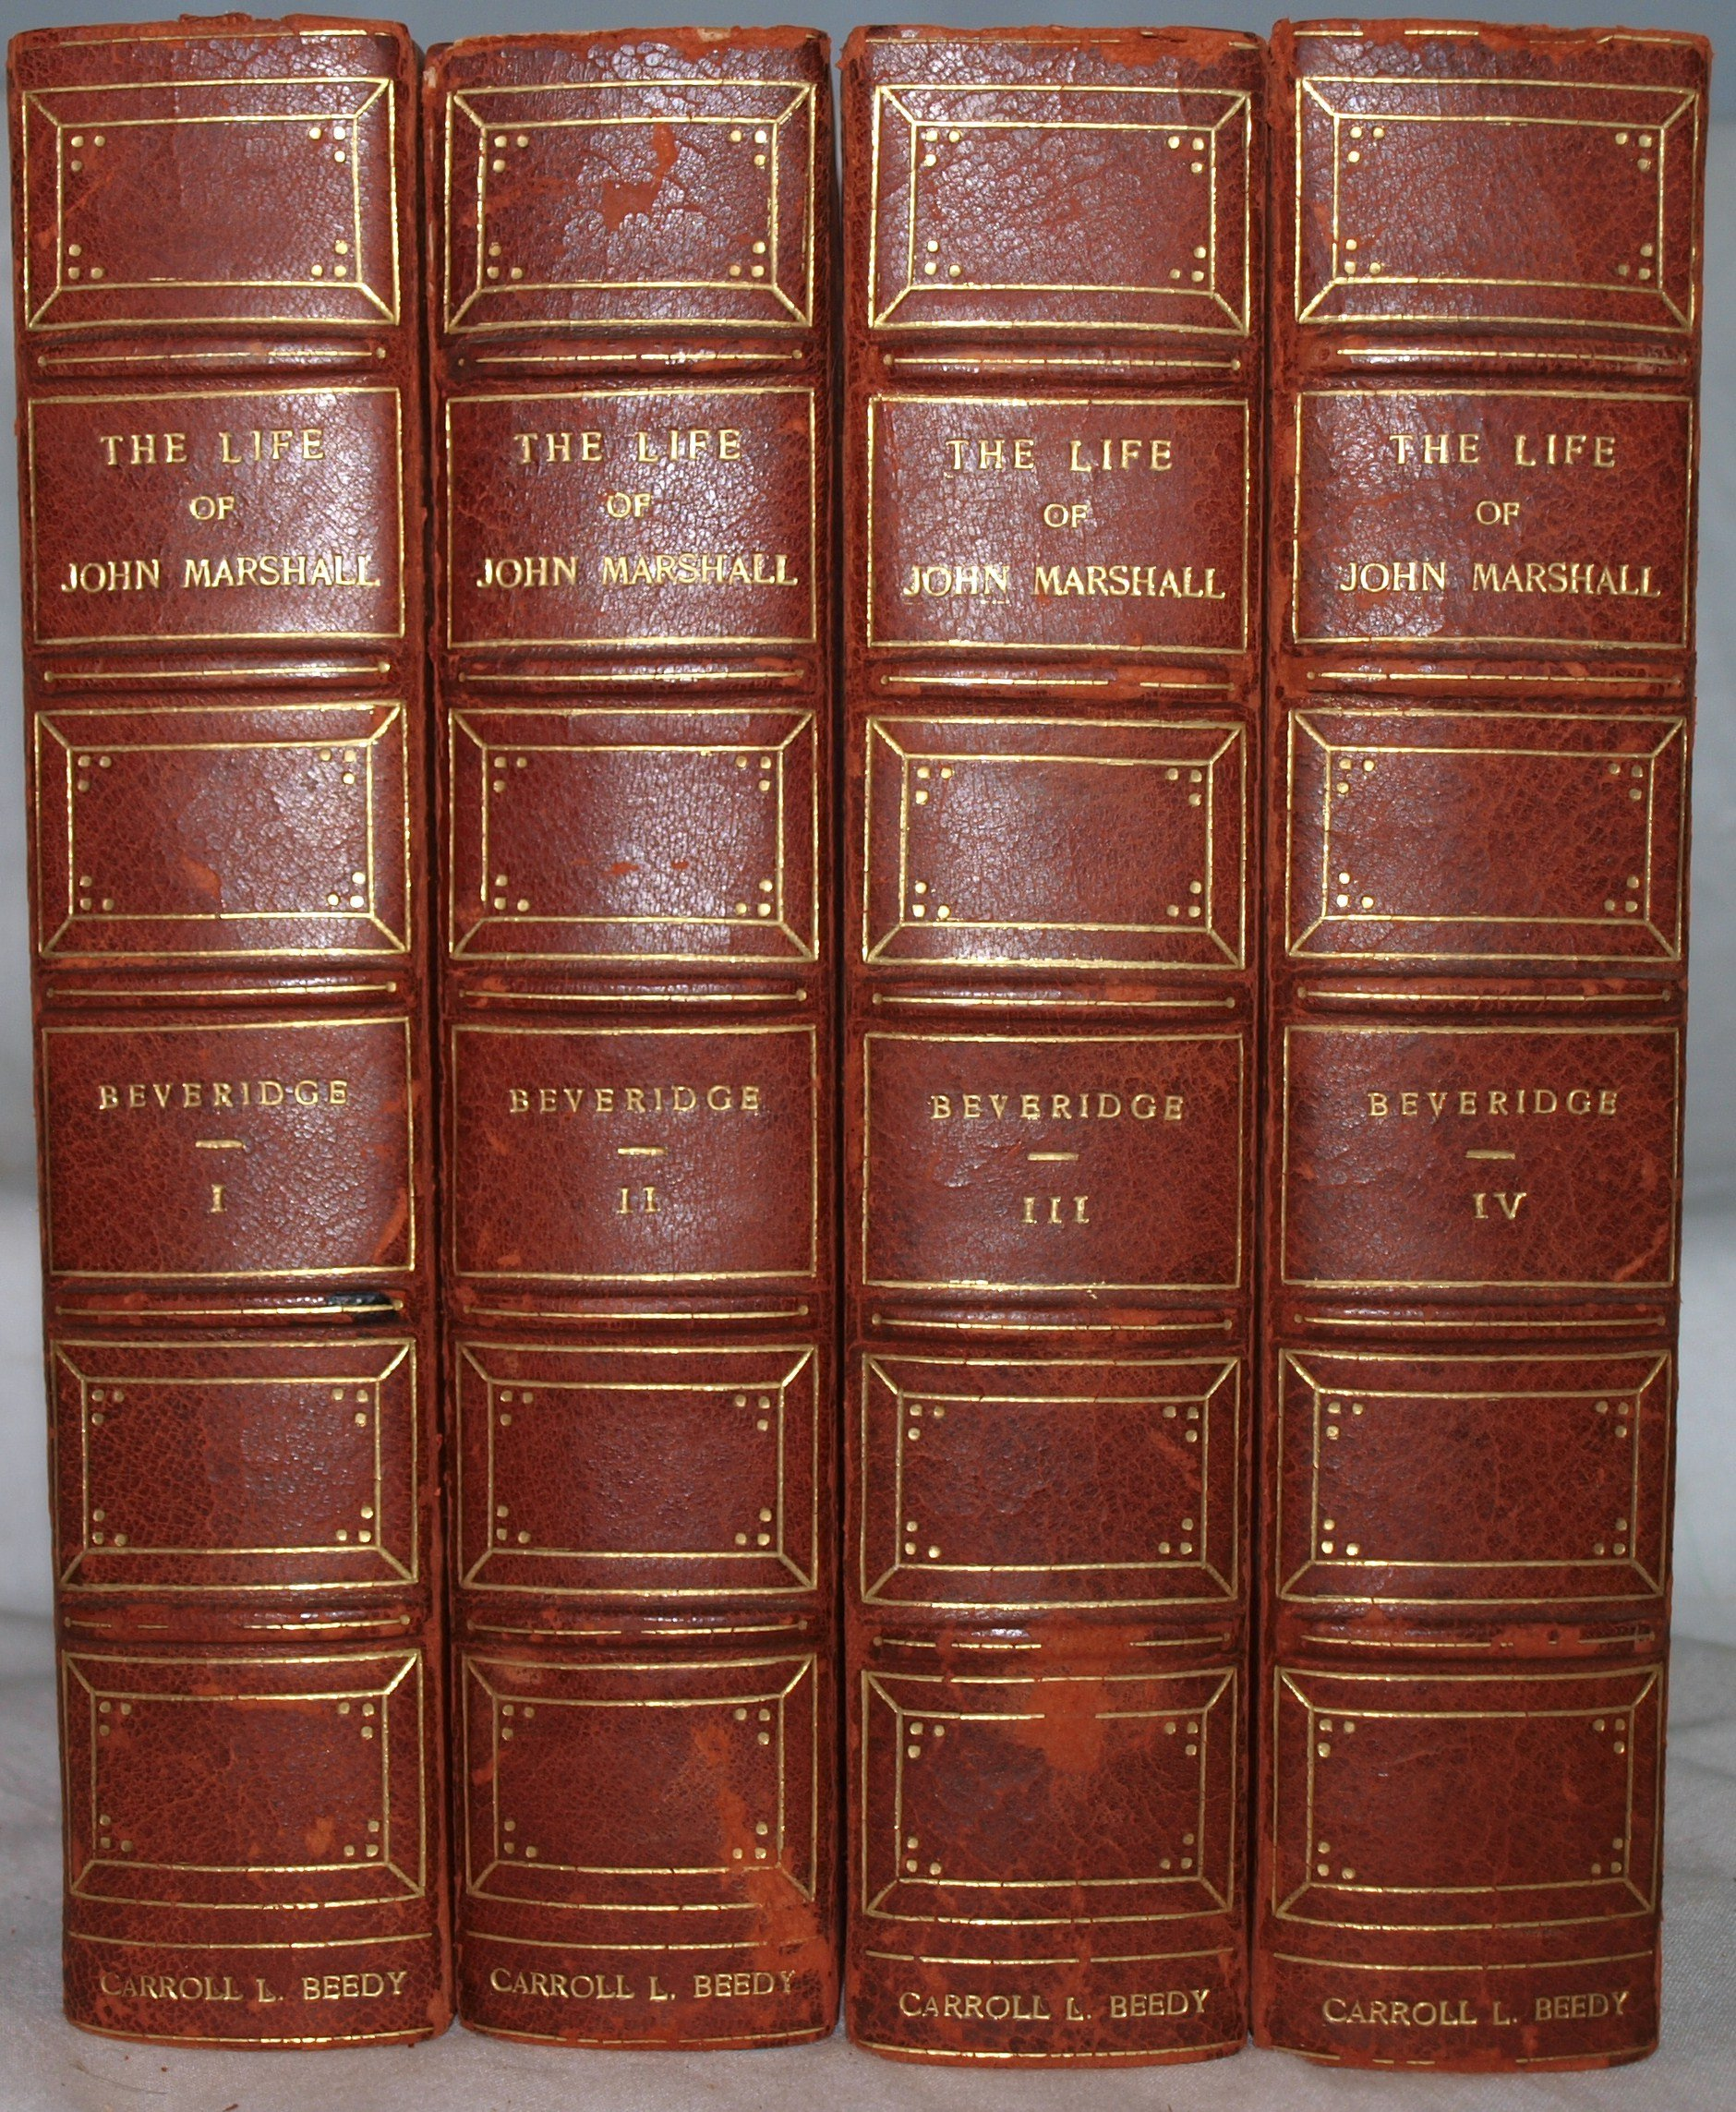 4 Vols in 2 Hardcovers The Life of John Marshall